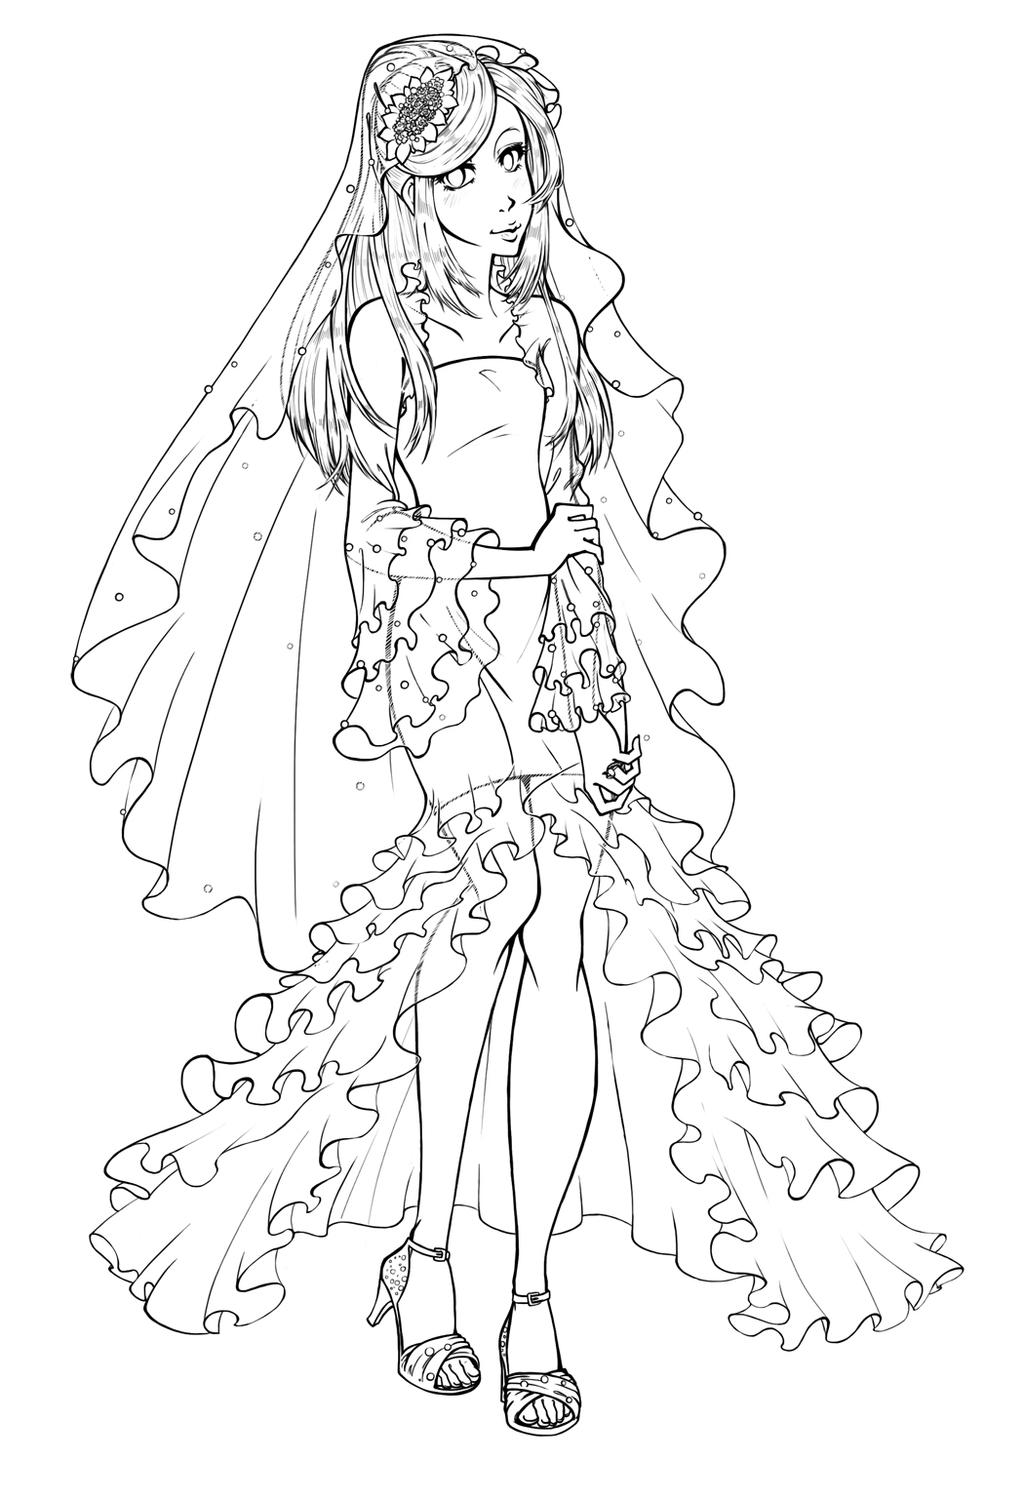 Wedding Dress Line Drawing : Wedding dress lineart by miha hime on deviantart